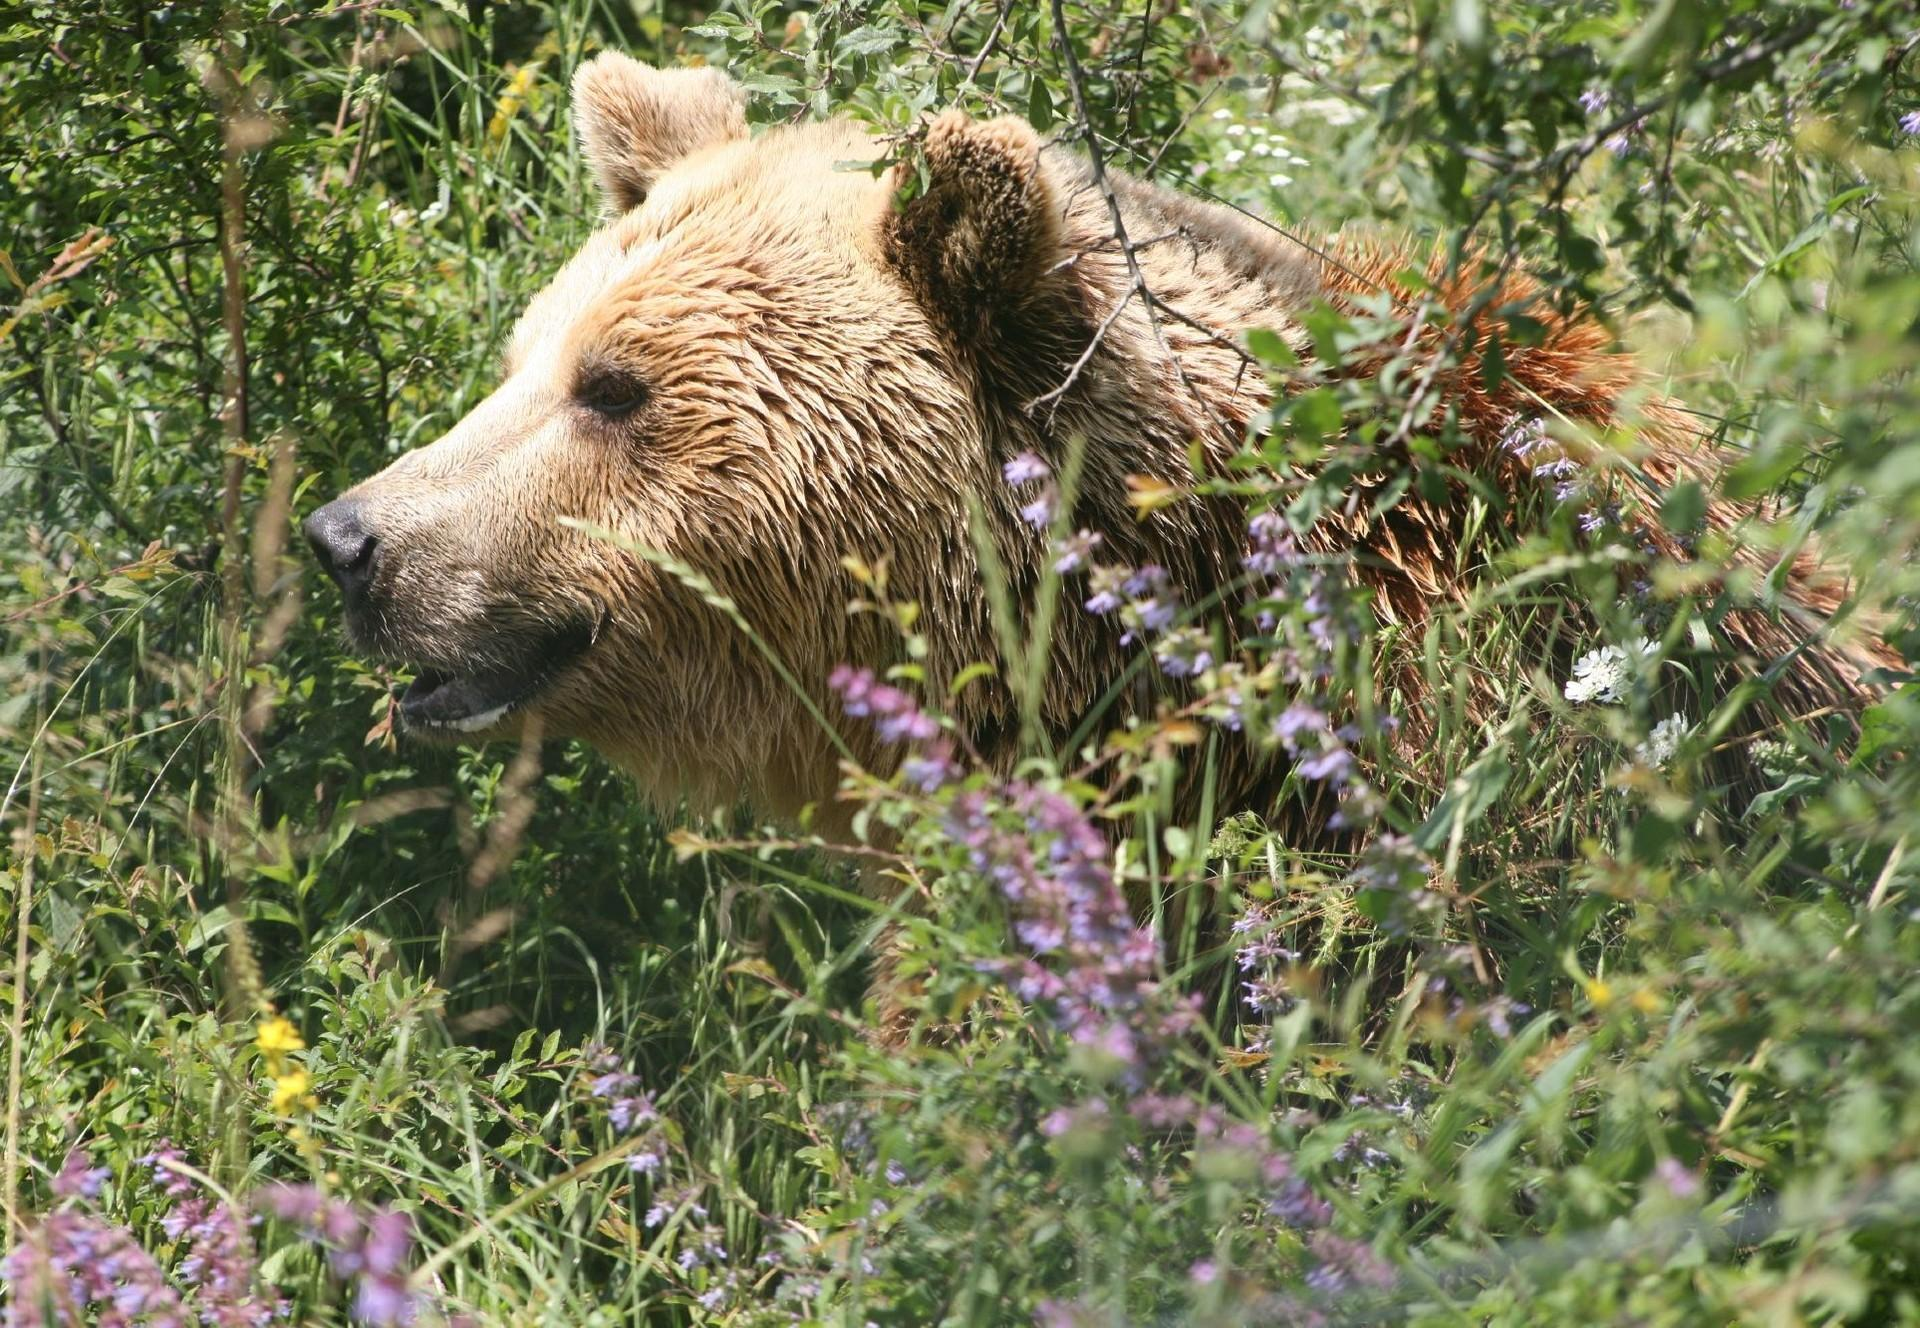 Bear is sitting in the grass